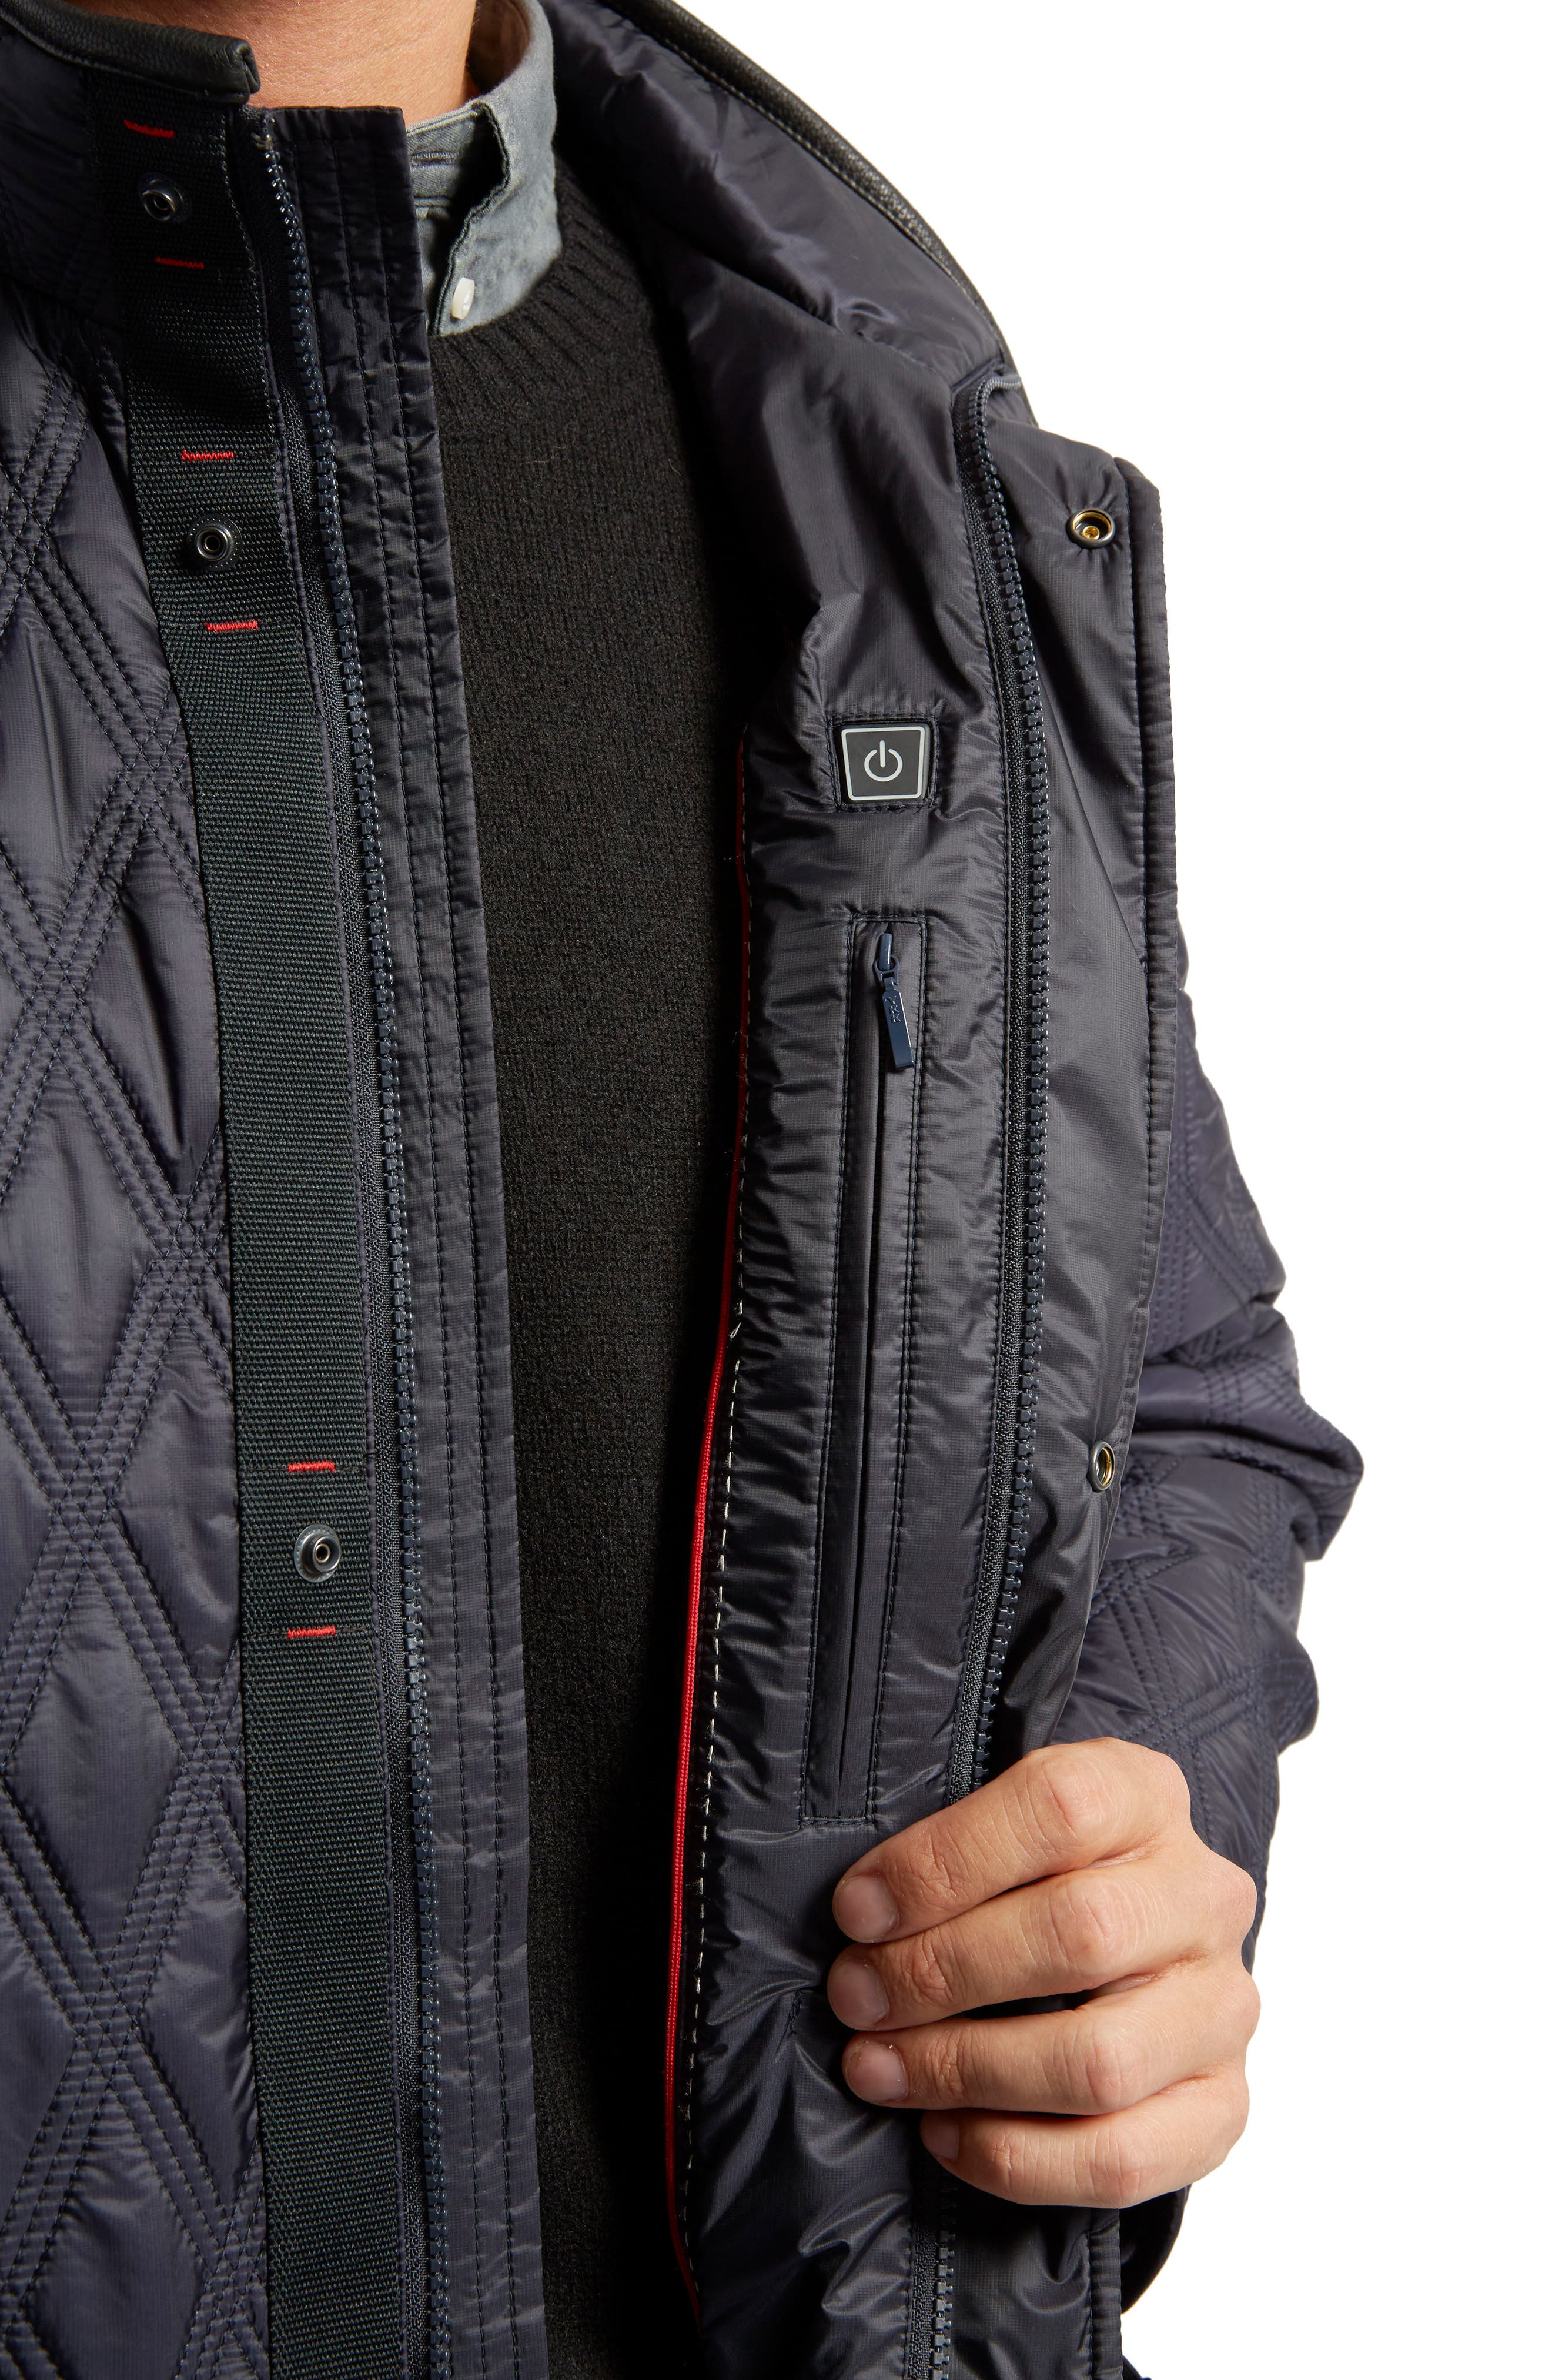 Prichard Triple Stitch Quilted Heat System Jacket,                             Alternate thumbnail 5, color,                             Midnight